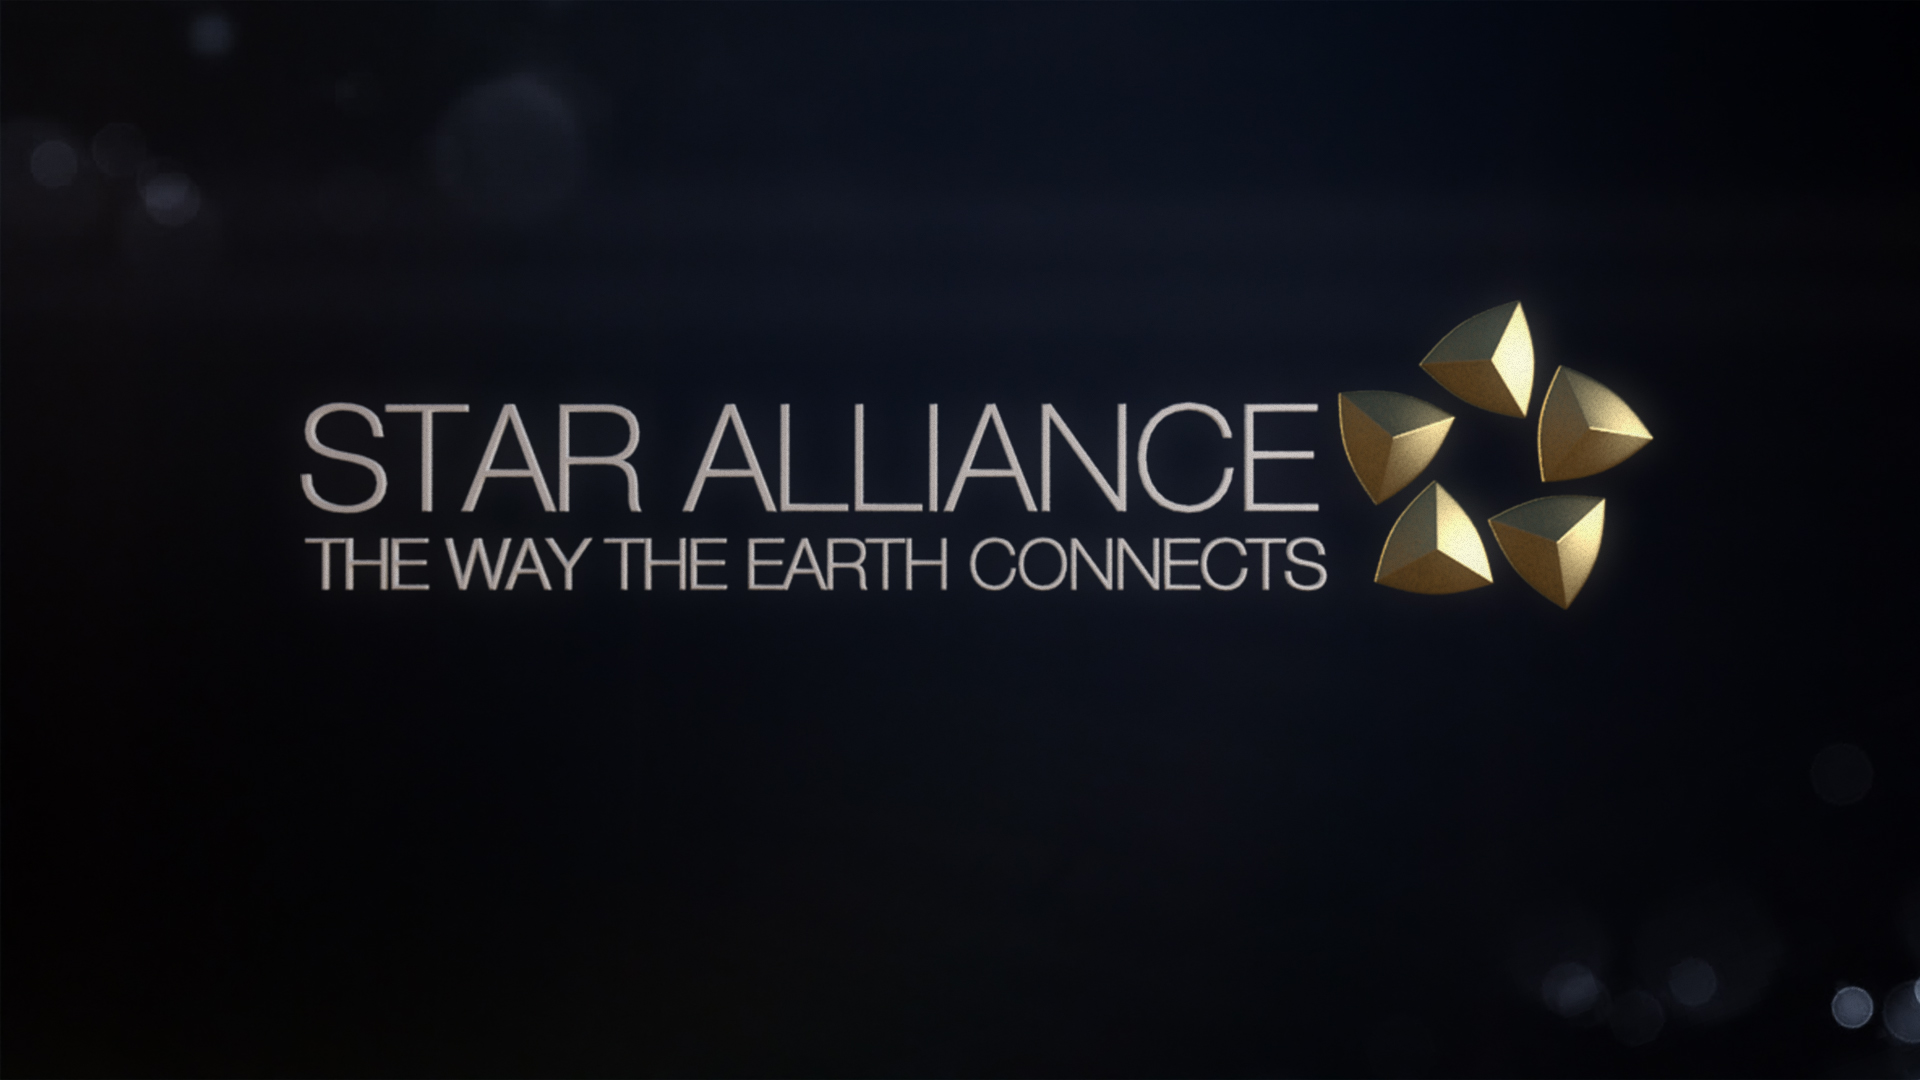 star alliance the way the earth connects